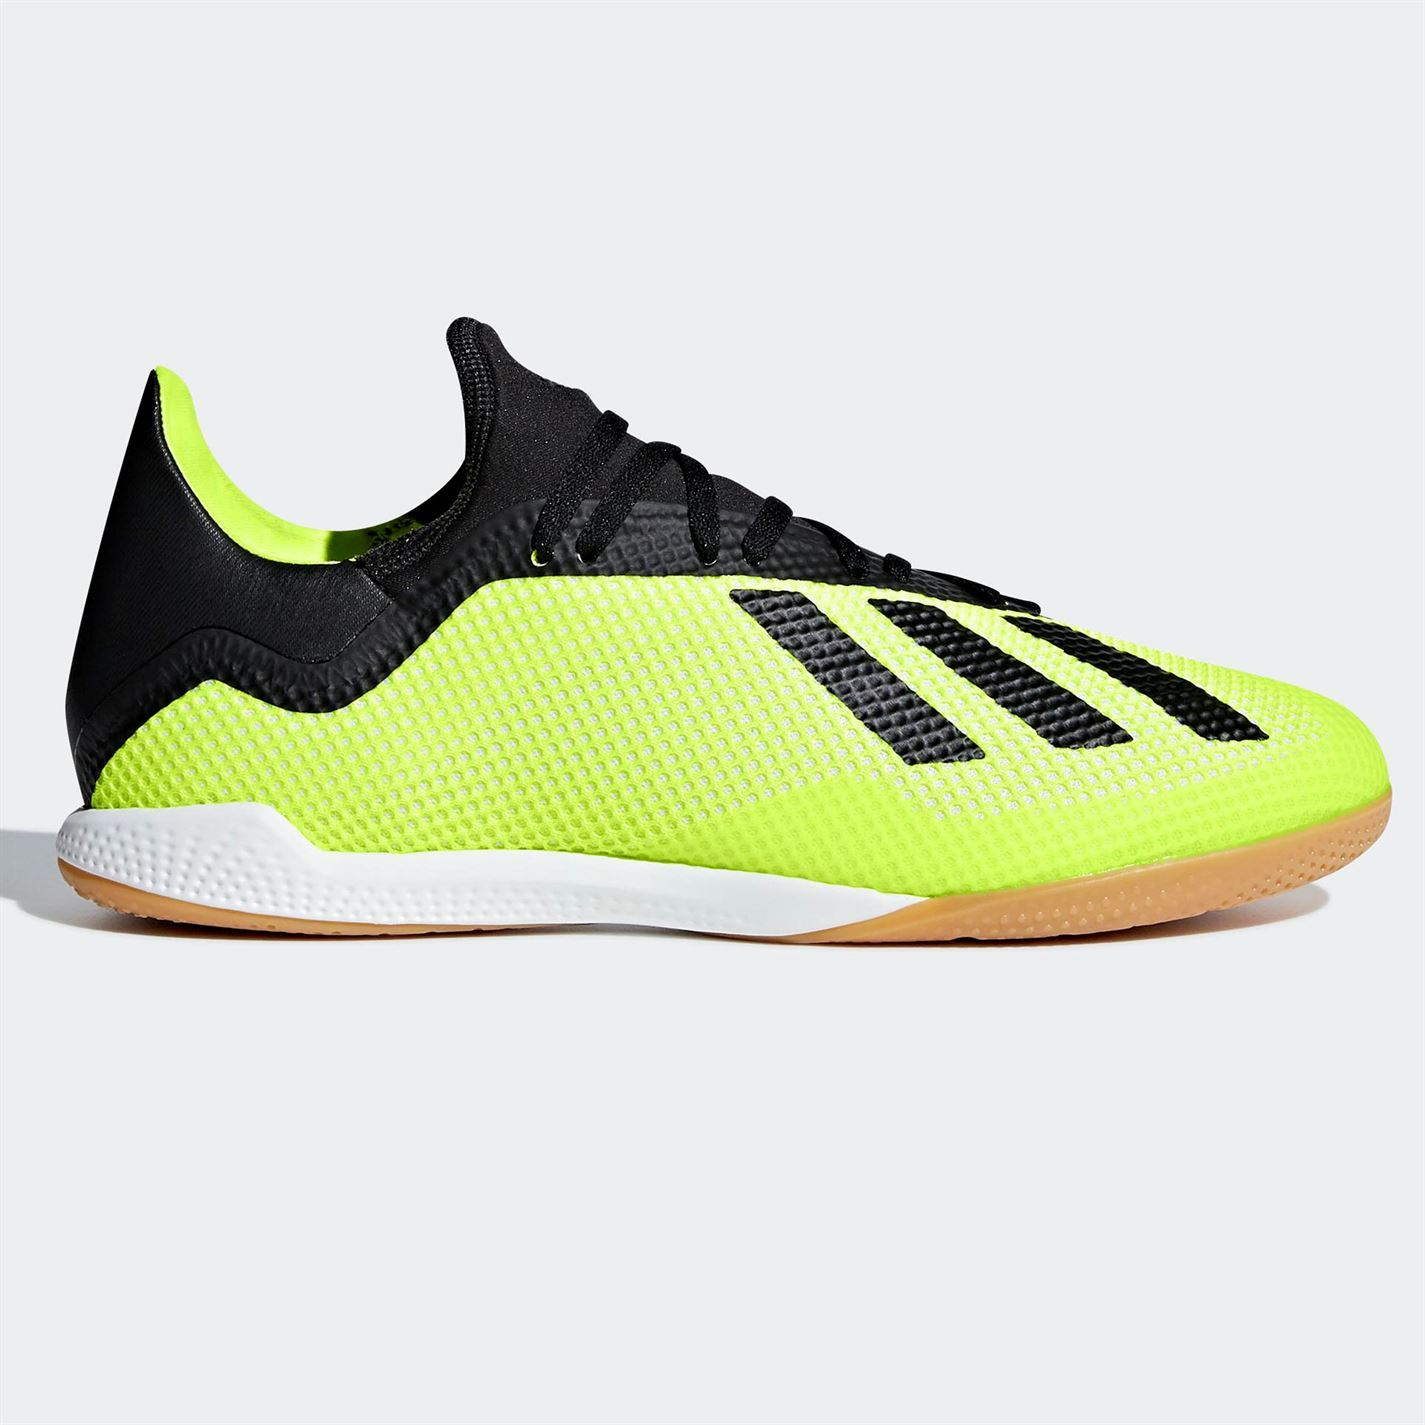 81ed2437d39 adidas X Tango 18.3 Indoor Football Trainers Mens Soccer Futsal Shoes  Sneakers